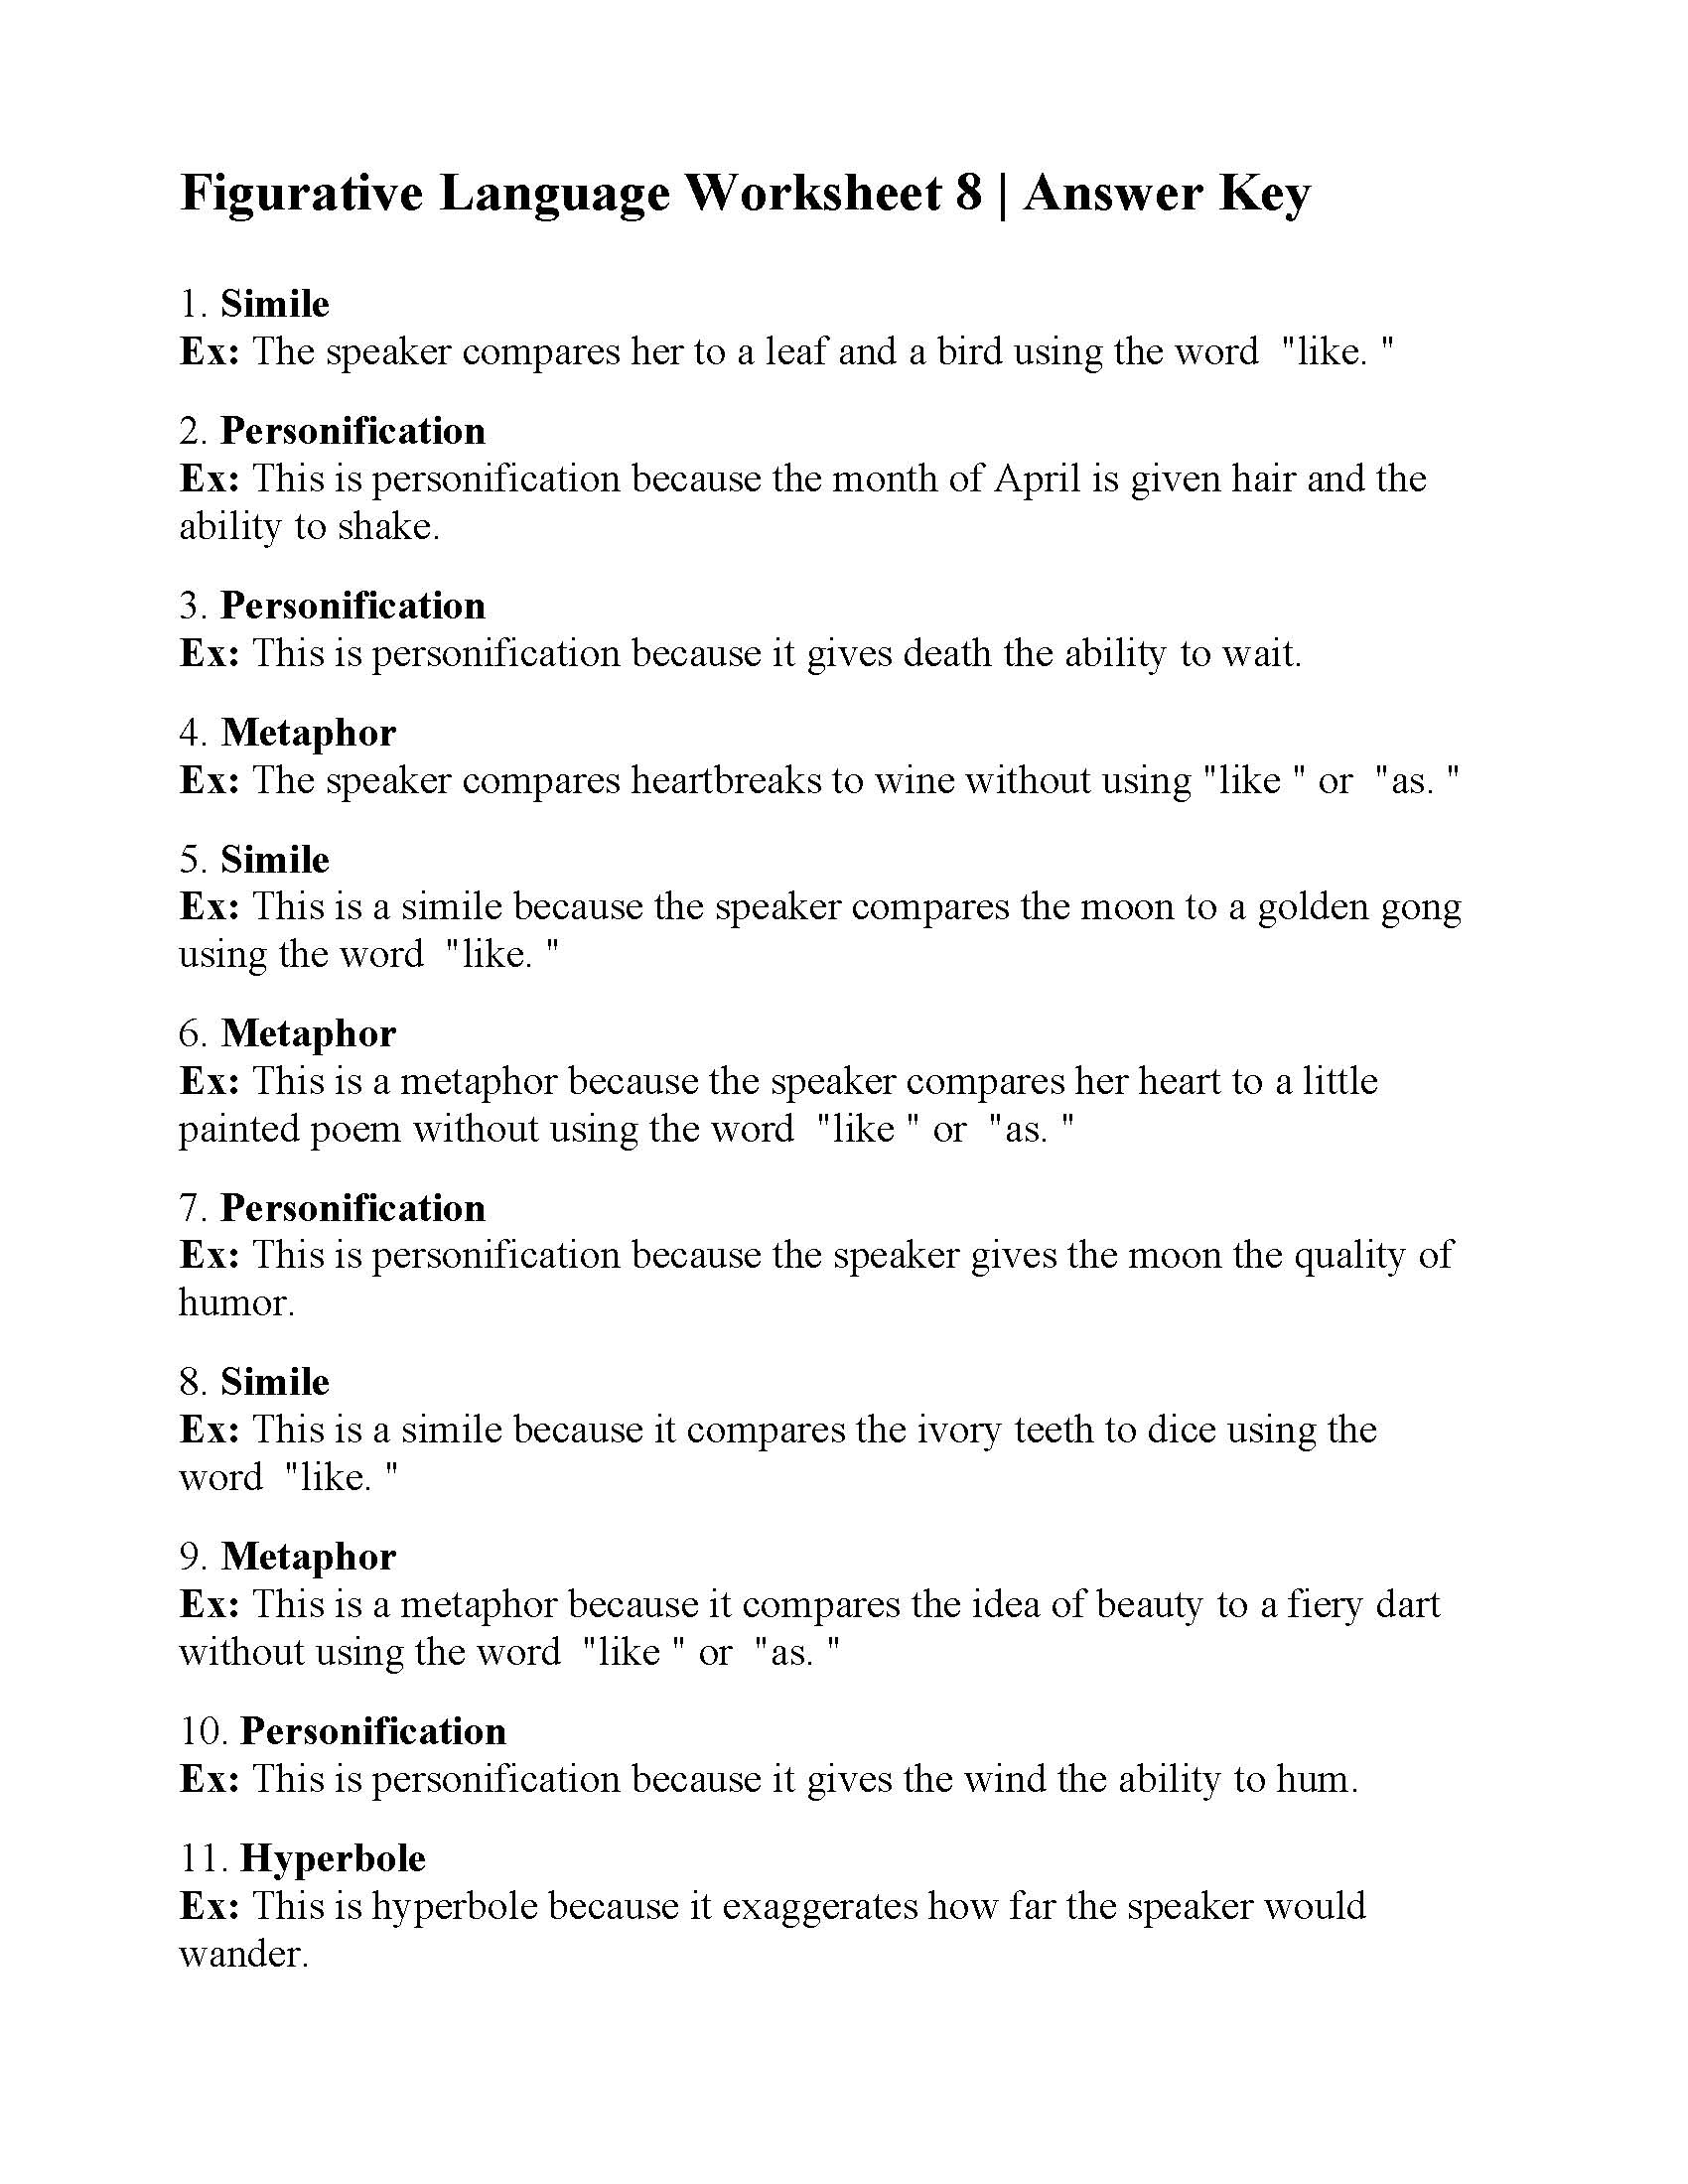 likewise figures of sch worksheet – tattoocollection club likewise Worksheets Figurative Language Printable Simile Grade 5 And Metaphor further  likewise Figurative Language Worksheet 8   Answers as well Identifying Figurative Language 1 Grade Worksheet Worksheets Three further Figurative Language Worksheets 6th Grade Arts Pdf as well Figurative Language Worksheets   Simile Worksheets further  furthermore 8th Grade Figurative Language Worksheets Worksheet Answers Pictures in addition Figurative and Literal Language Worksheet   Lesson Pla    Places together with Figurative Language Unit  6 Types of Figurative Language Worksheets besides Figurative Language Worksheets Grade 5 Figurative Language What Is additionally figurative language worksheets grade 6 furthermore General Reading  prehension Worksheets Activities Queens Birthday additionally Printable Figurative Language Worksheets   Printable Pages. on figurative language worksheets grade 6